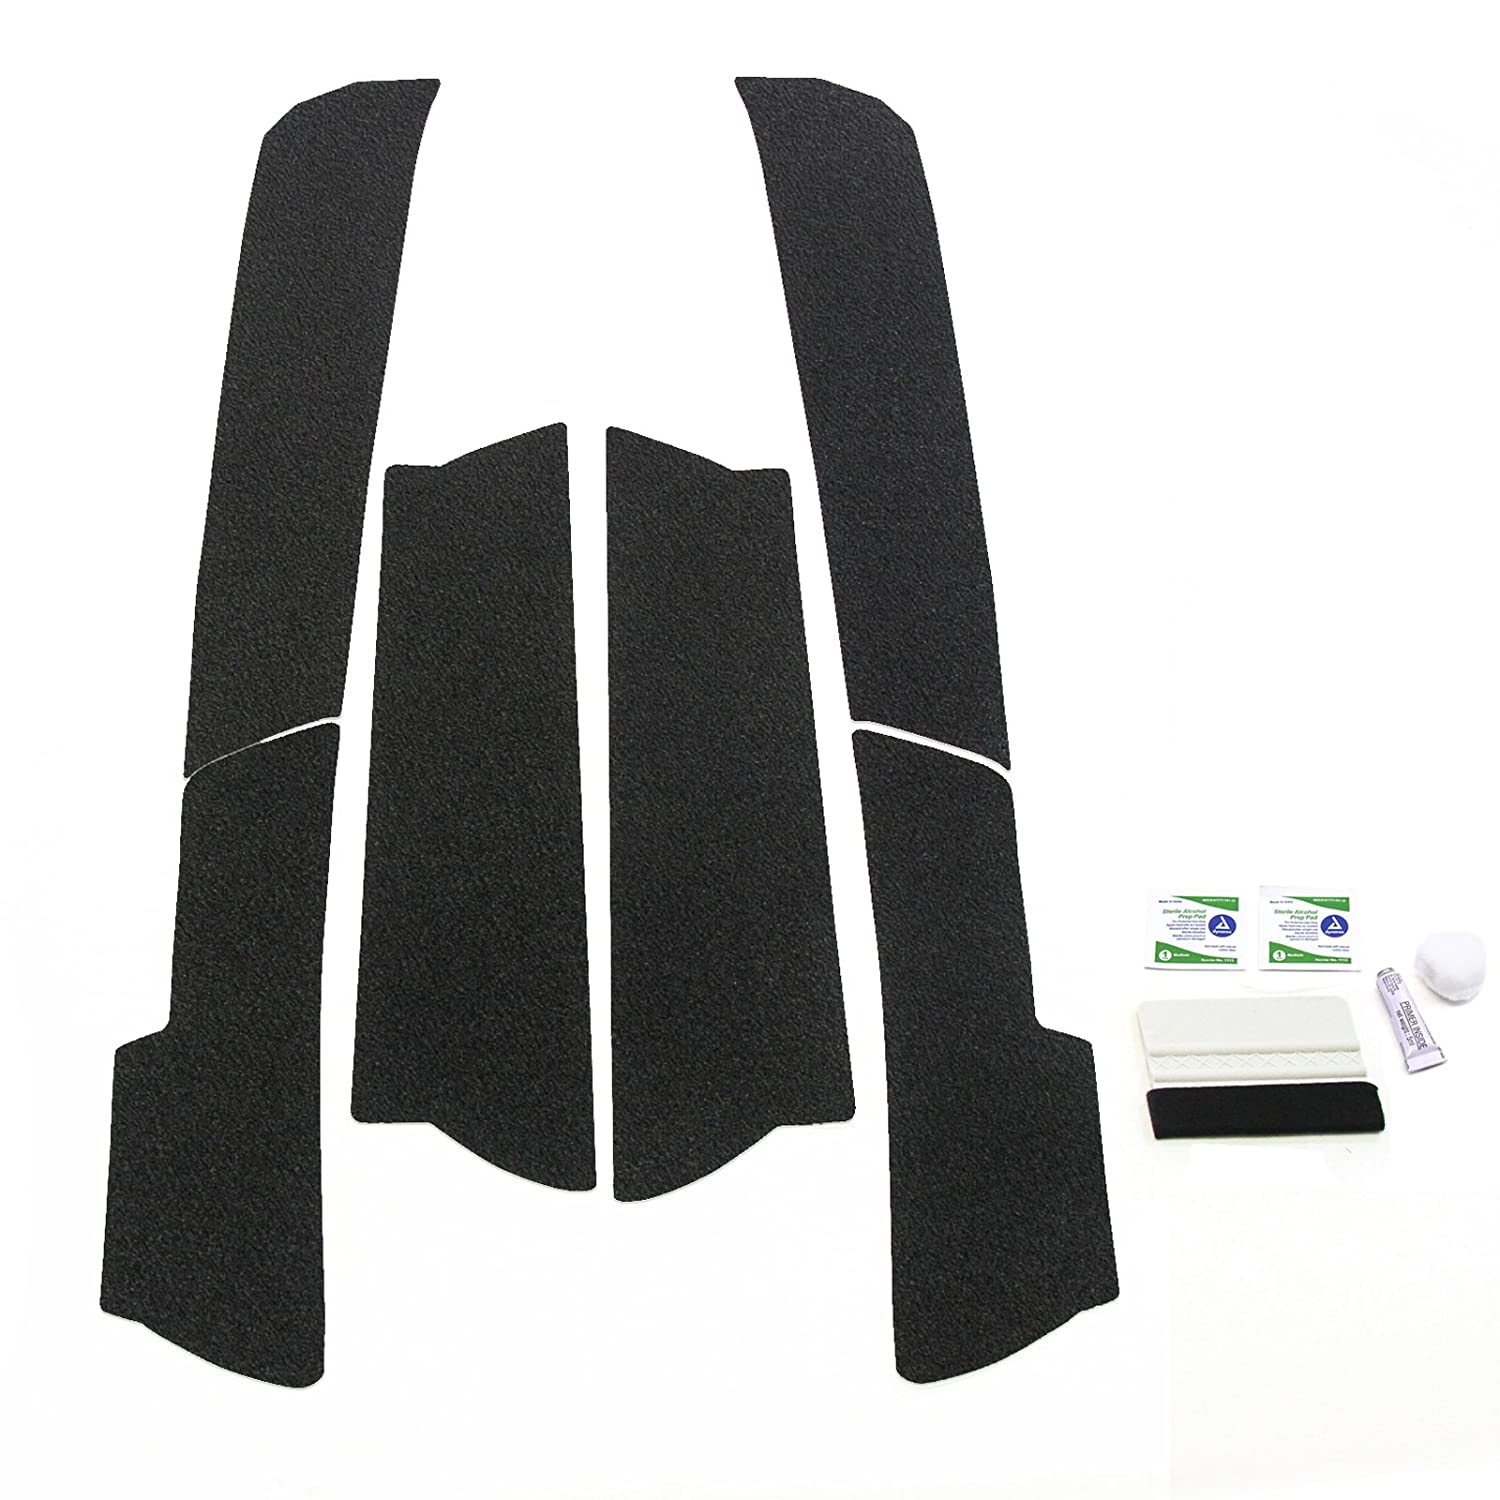 Red Hound Auto Door Entry Guards Scratch Shield 2011-2019 Compatible with Jeep Grand Cherokee 6pc Kit Paint Protector